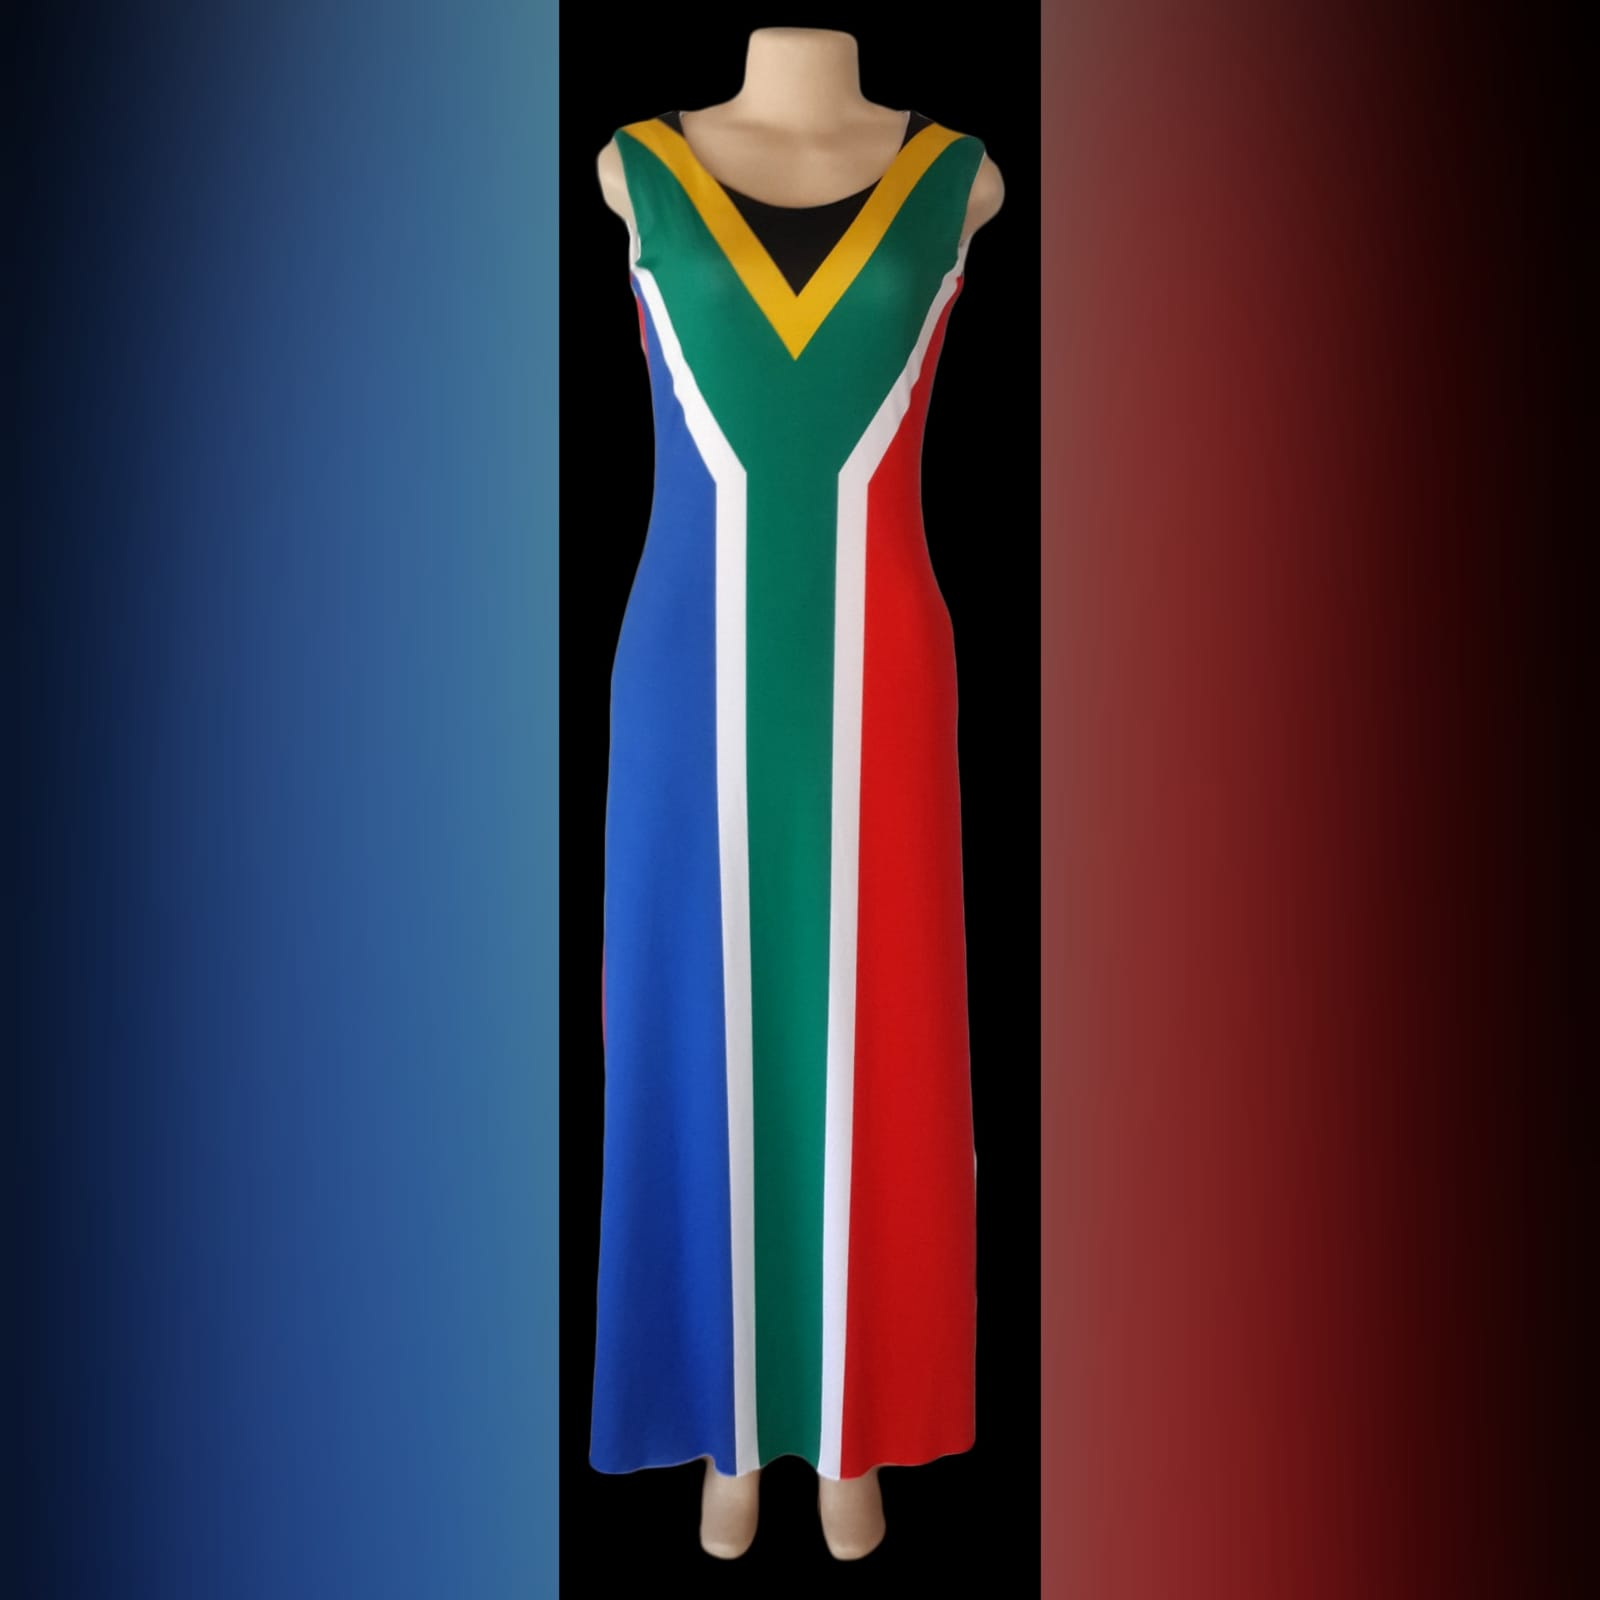 Long custom printed south african flag dress 5 long custom printed south african flag dress (flag in front and the back) with matching bow ties that you can request at an extra cost when you order your dress.